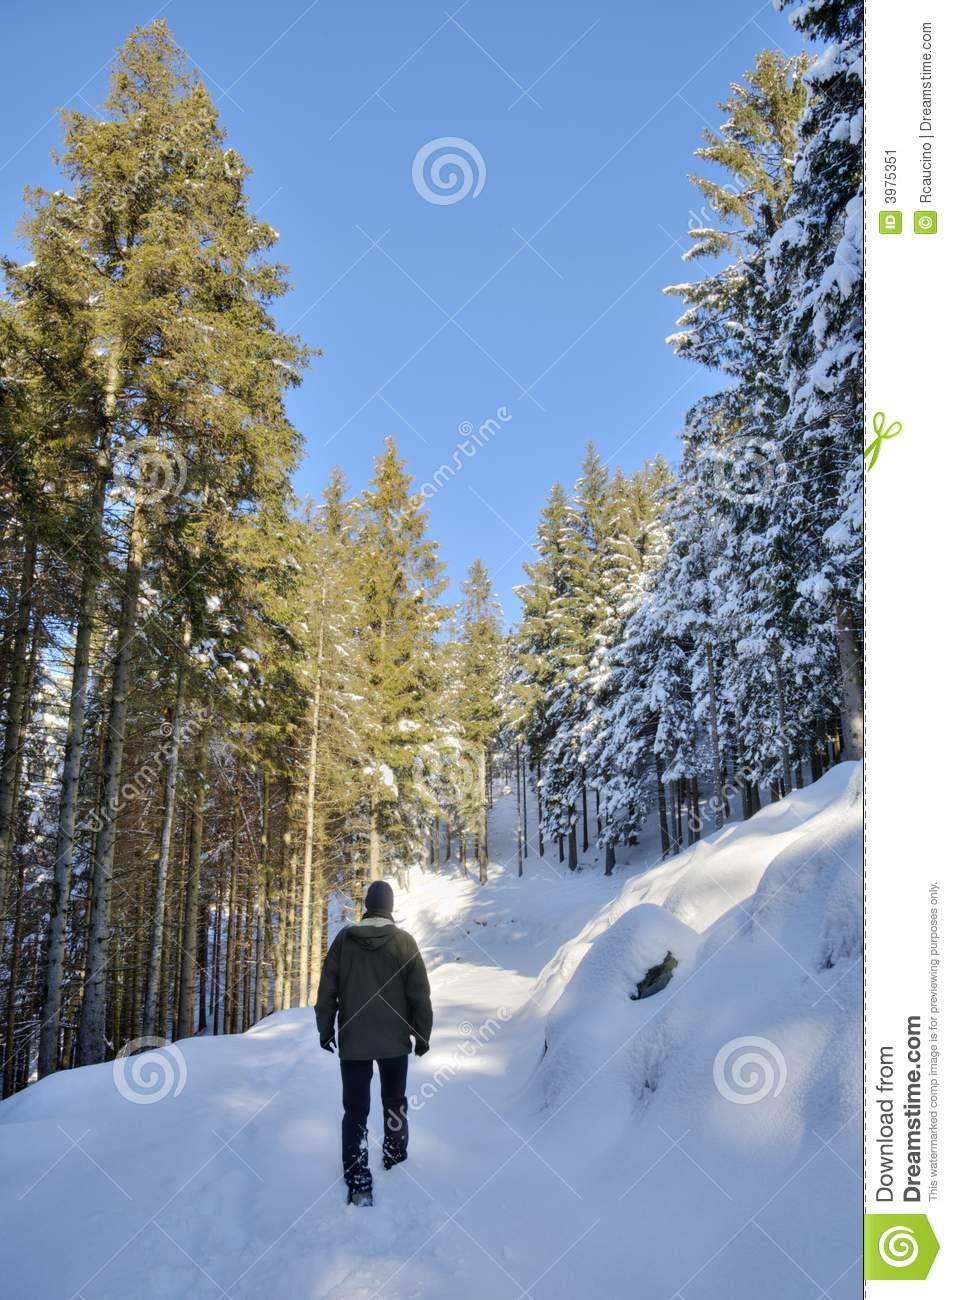 walking in the snow - photo #34